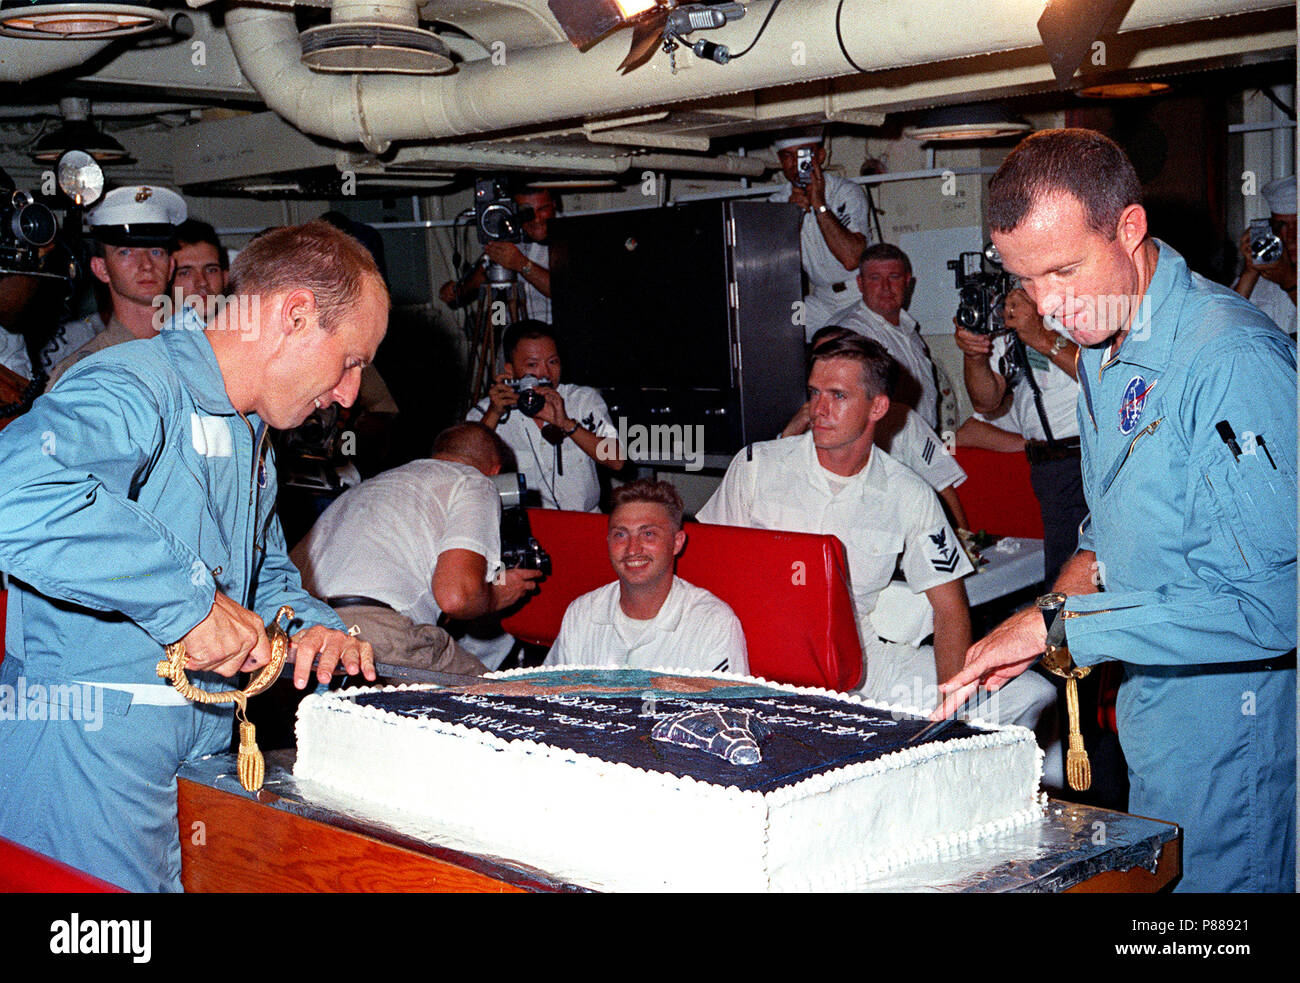 Astronauts Charles Conrad Jr. (left) and L. Gordon Cooper Jr. prepare to slice into the huge cake prepared for them by the cooks onboard the aircraft carrier USS Lake Champlain. Stock Photo